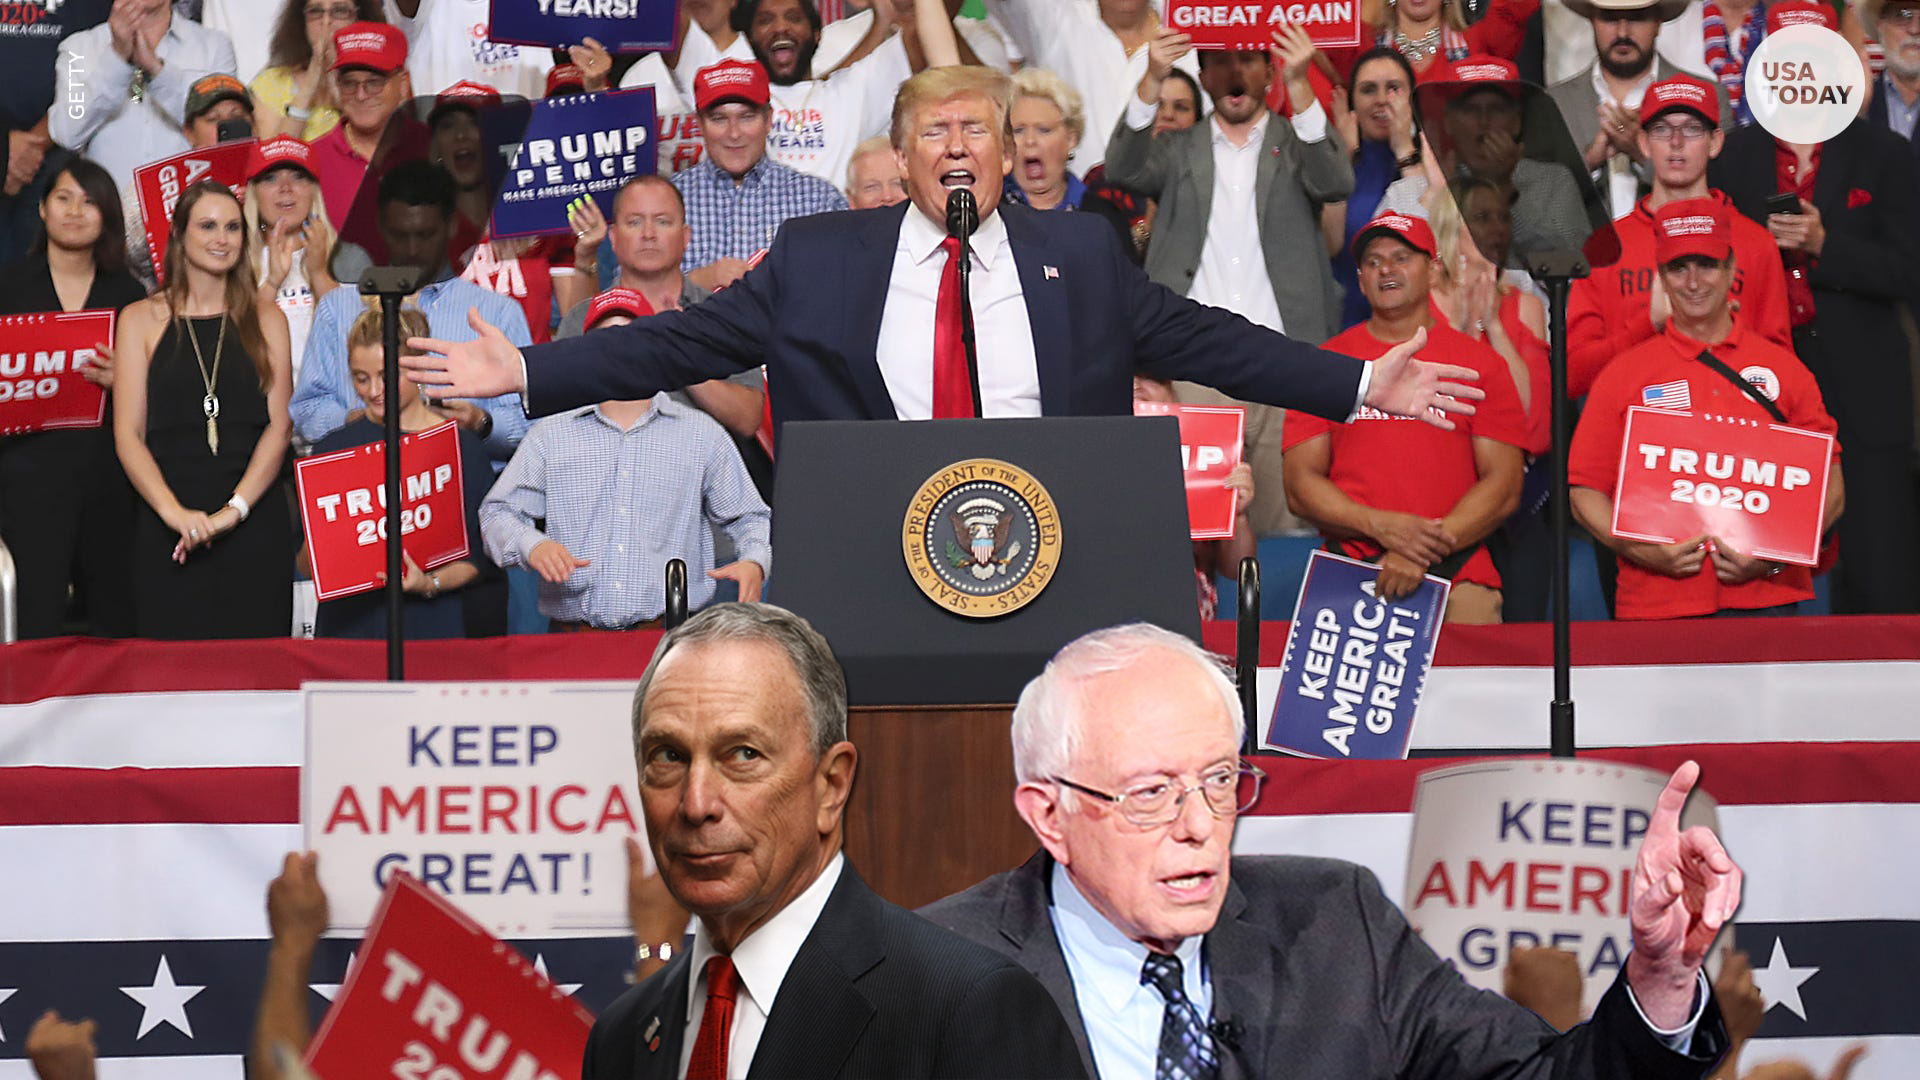 2020 Elections – Bloomberg's Out, but Waiting for Donald Trump – Bernie Sanders Still Standing